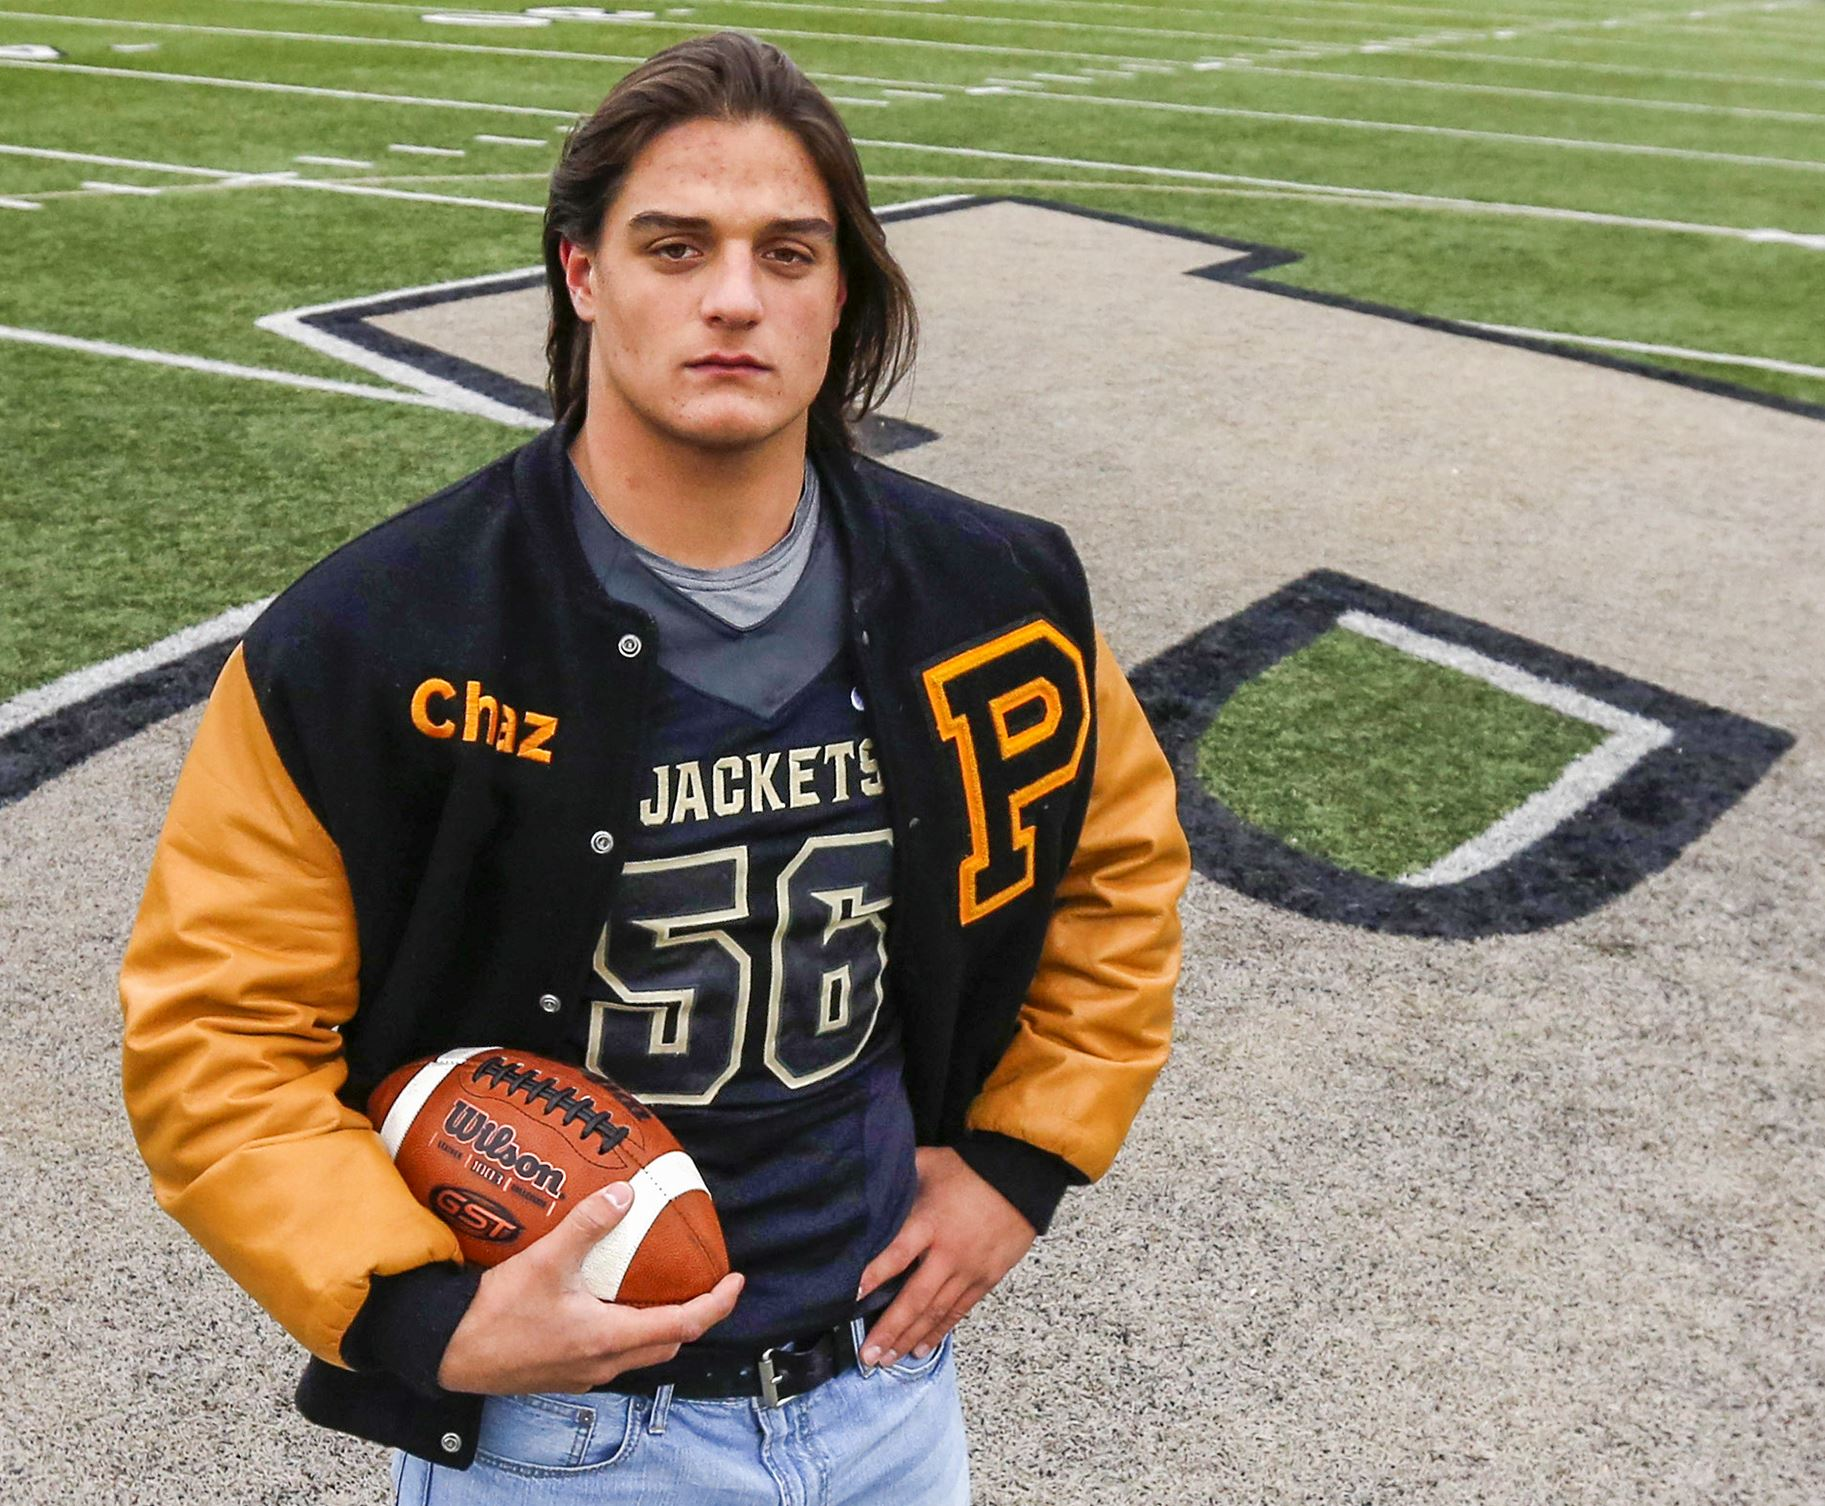 Perrysburg S Westfall Named Defensive Player Of The Year